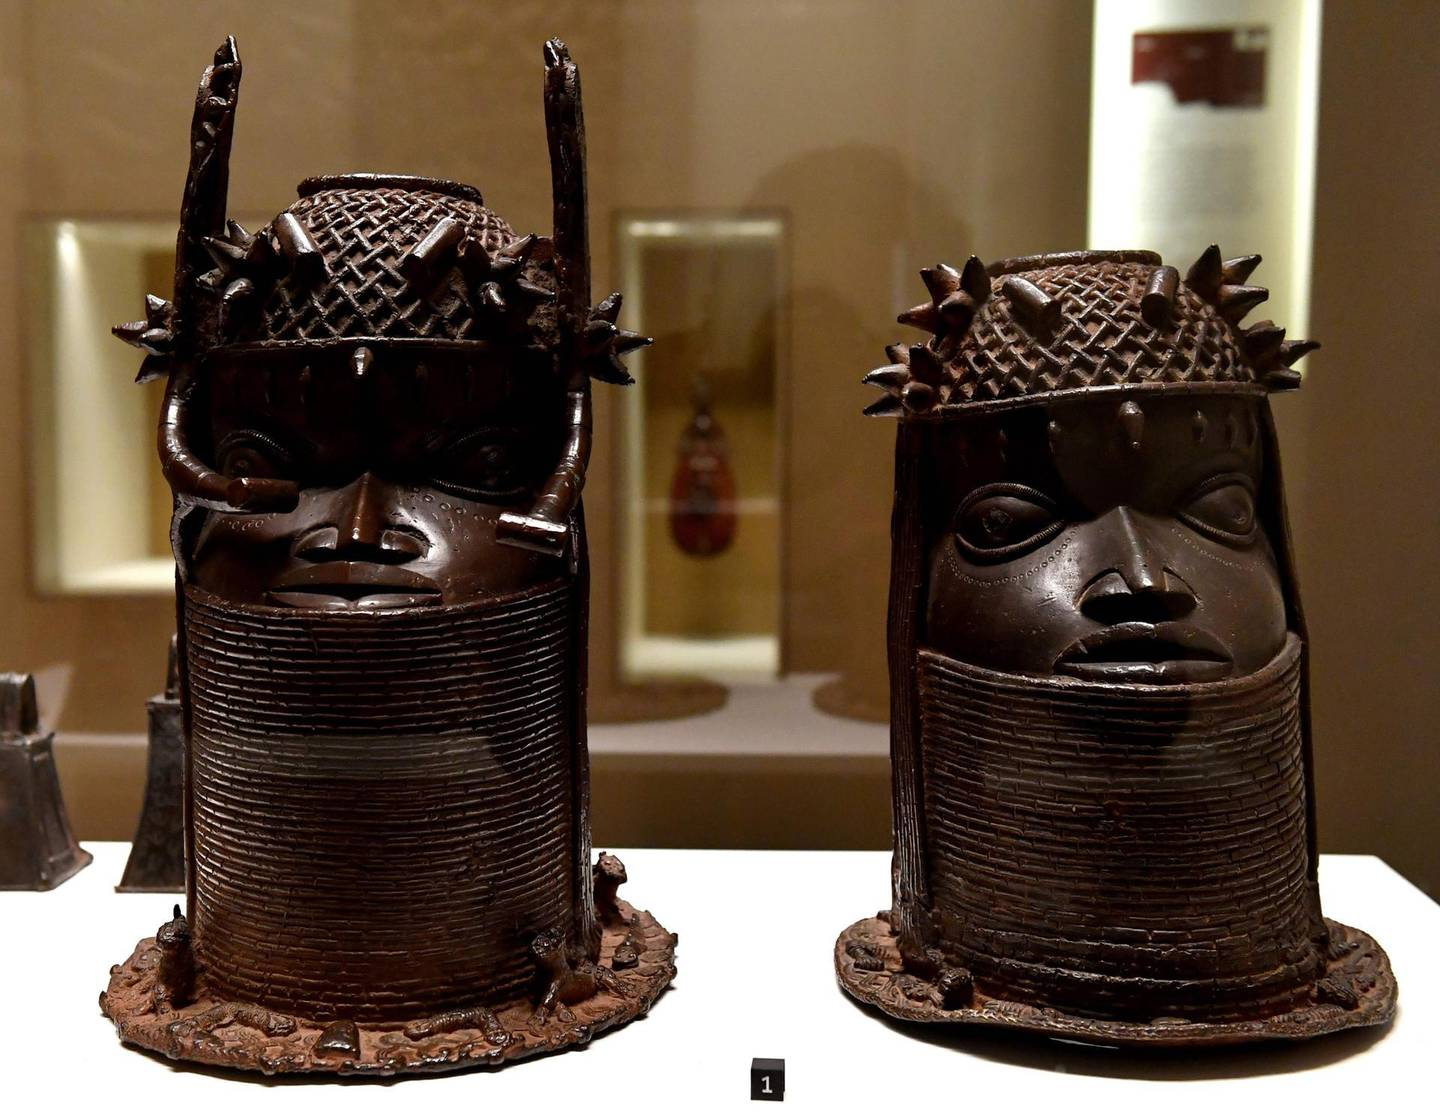 Heads of a Royal ancestor, arts of the Kingdom of Benin of the end of the 18th century are on display on June 18, 2018 at the Quai Branly Museum-Jacques Chirac in Paris. Benin is demanding restitution of its national treasures that had been taken from the former French colony Dahomey (current Benin) to France and currently are on display at Quai Branly, a museum featuring the indigenous art and cultures of Africa. / AFP / GERARD JULIEN